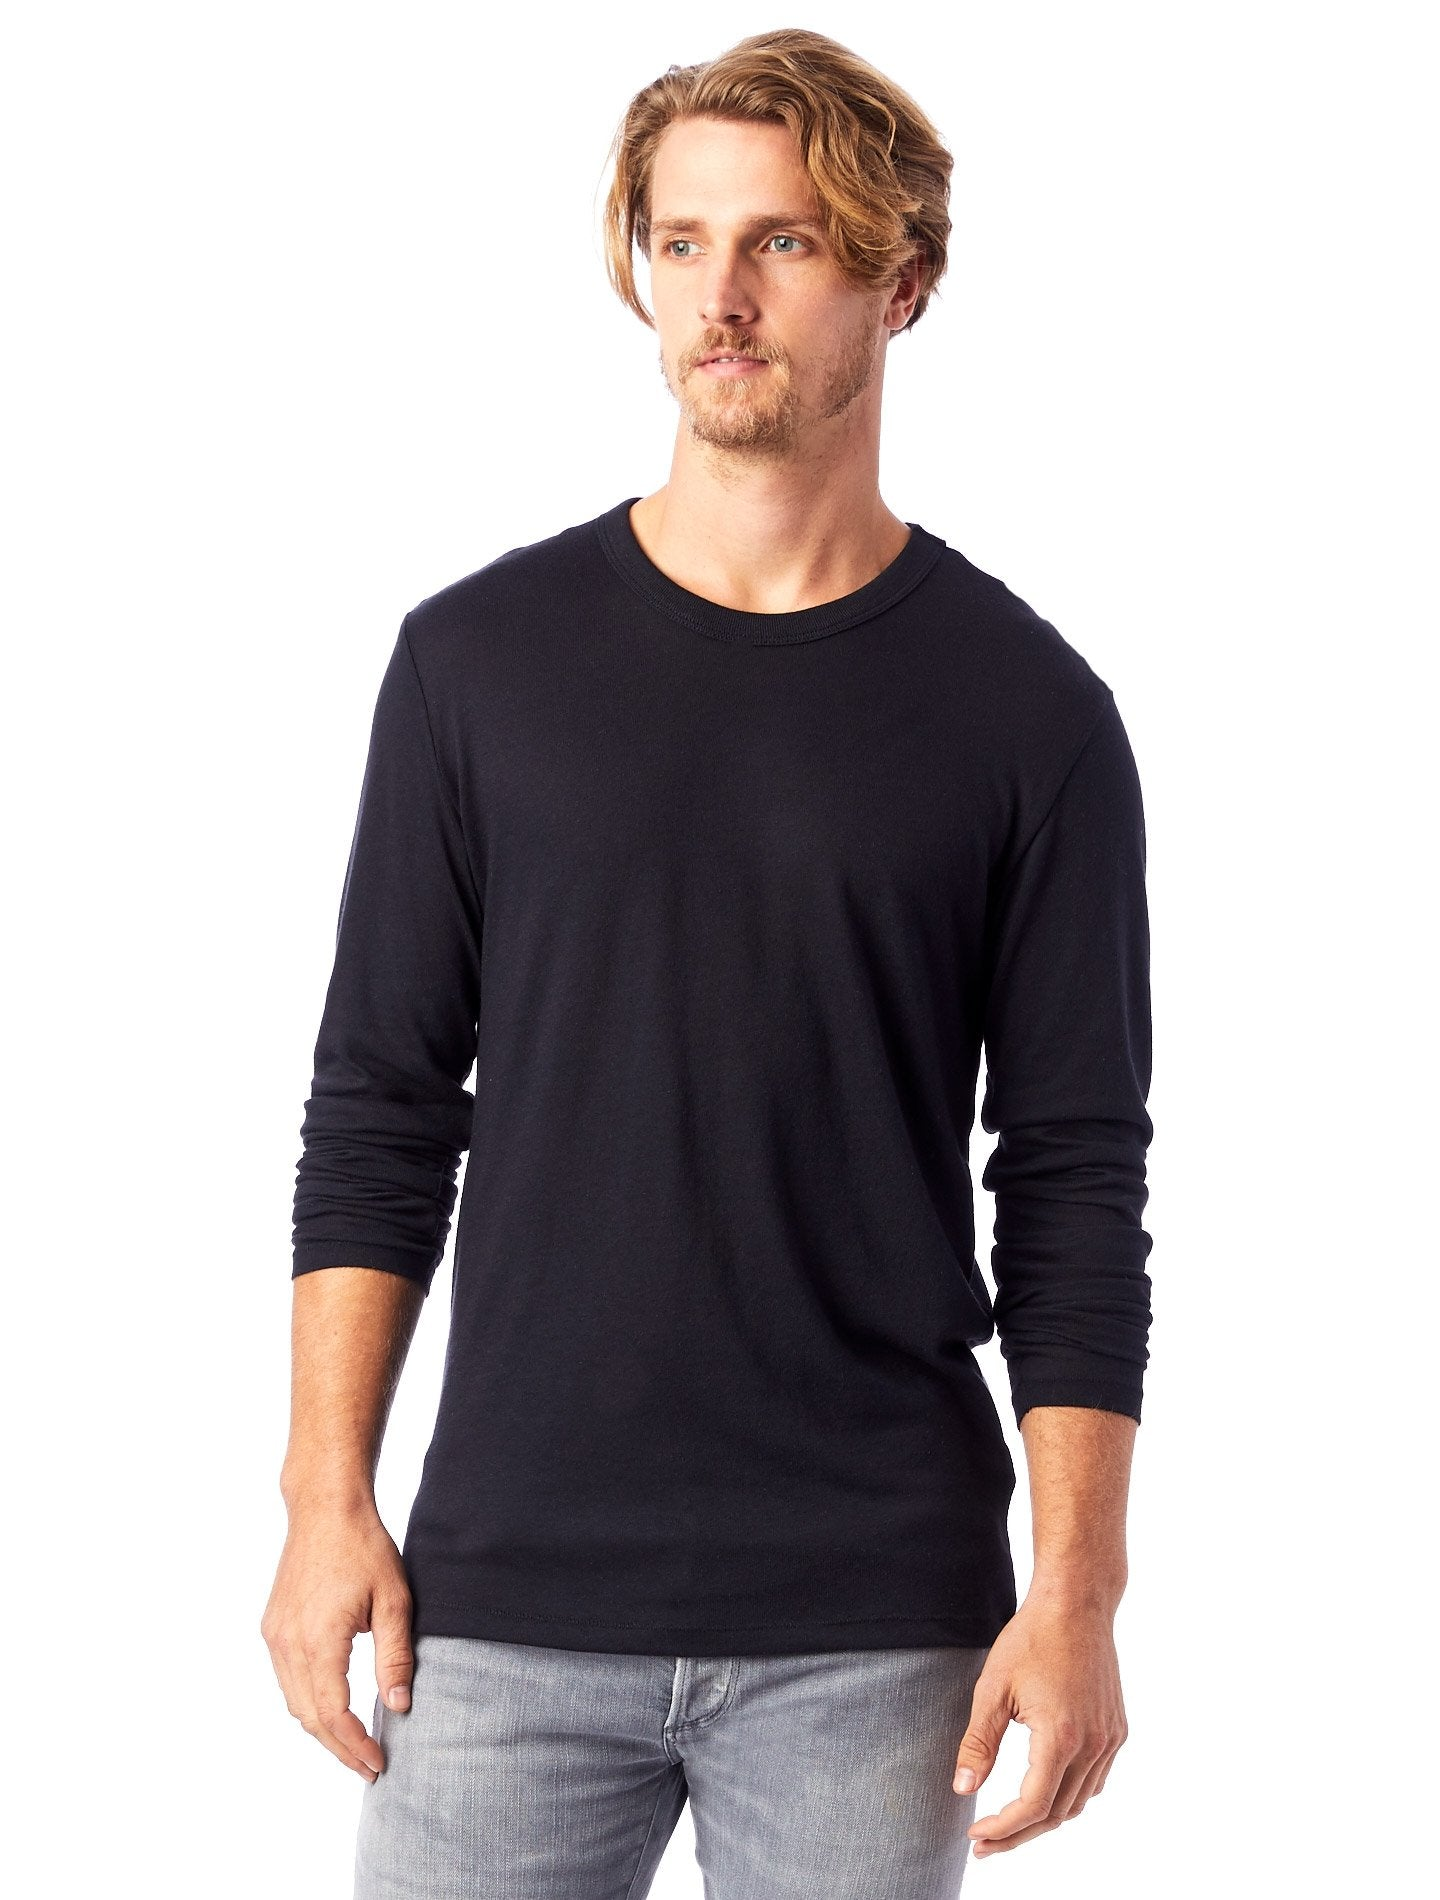 Alternative | Keeper Long Sleeve in Black at SHiFT Bainbridge